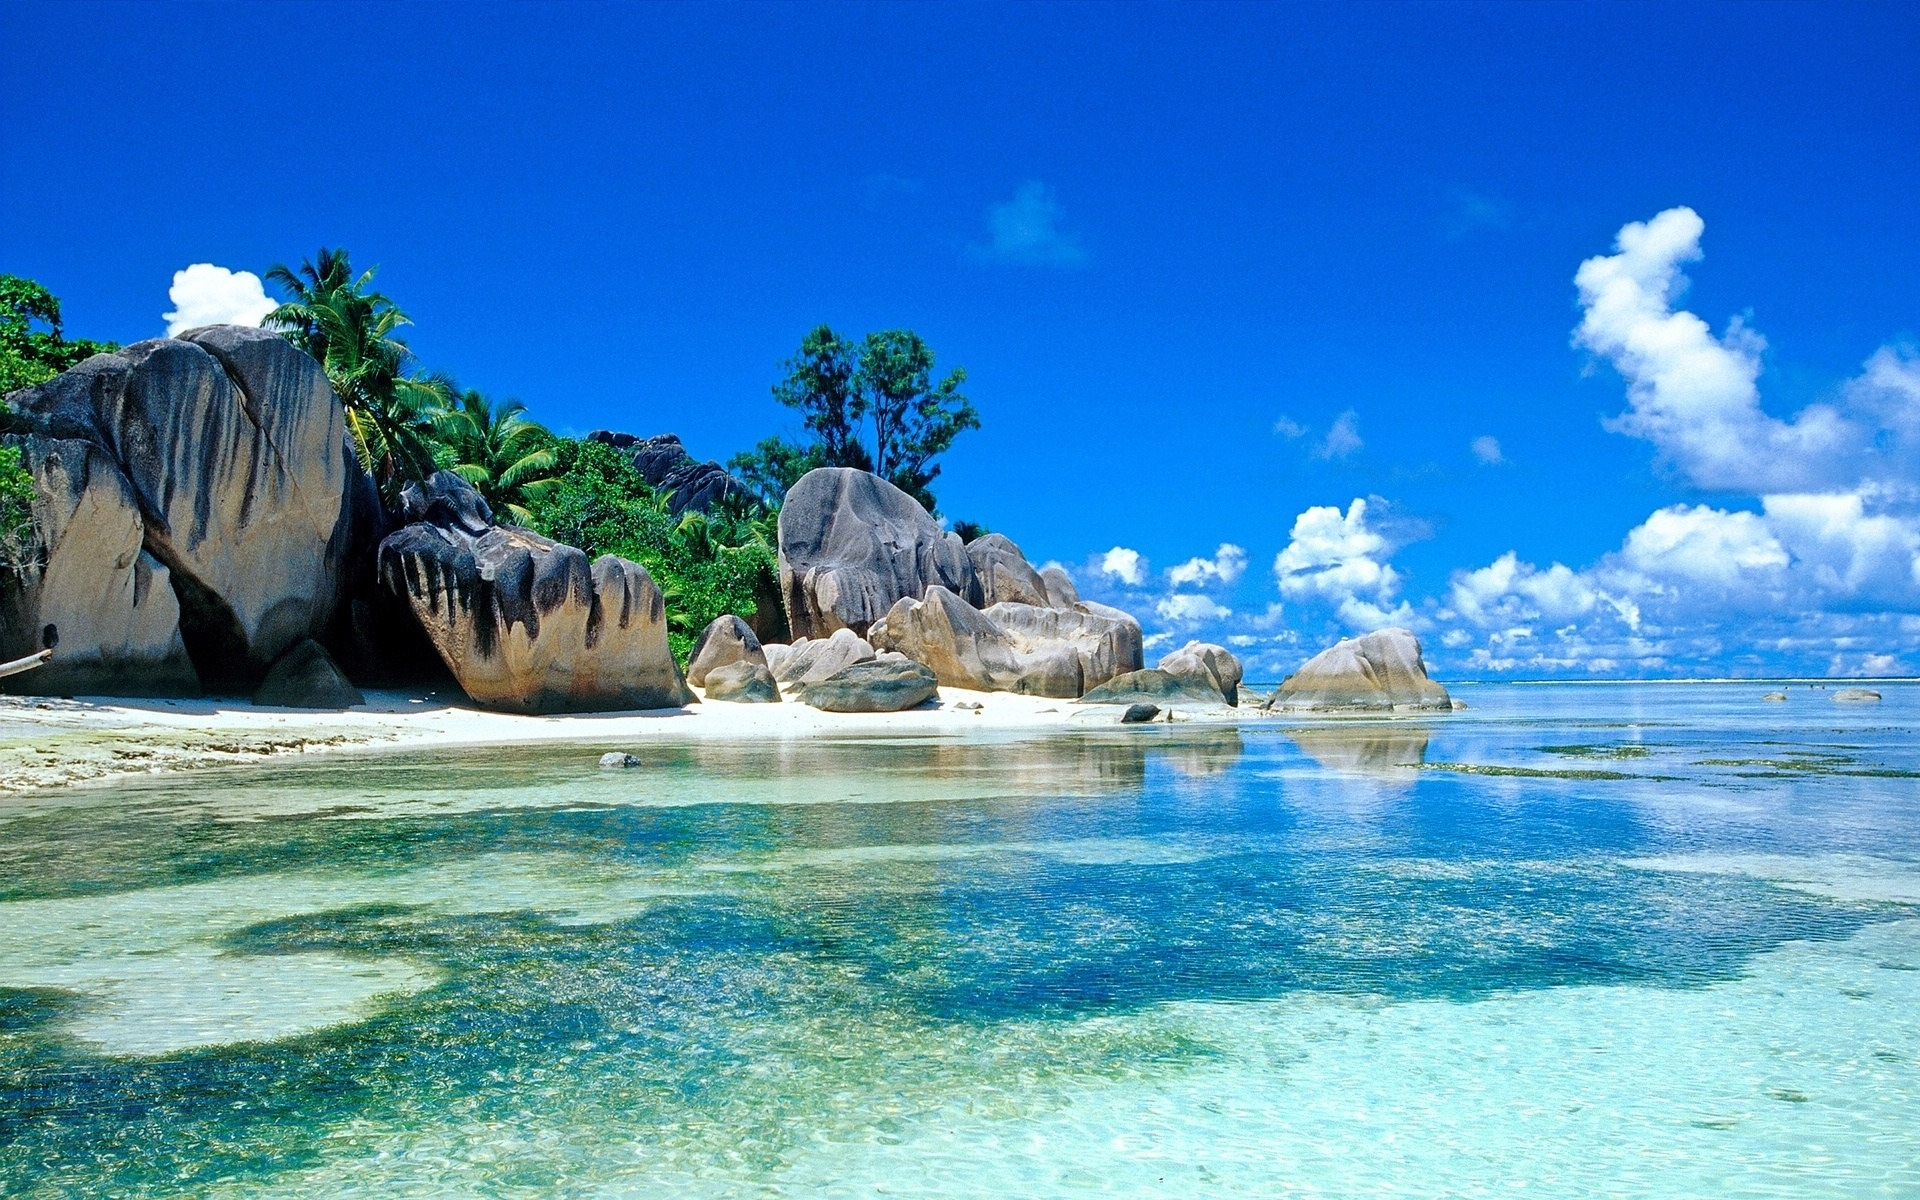 Islas Seychelles Naturaleza Paisaje Hd Wallpapers 11